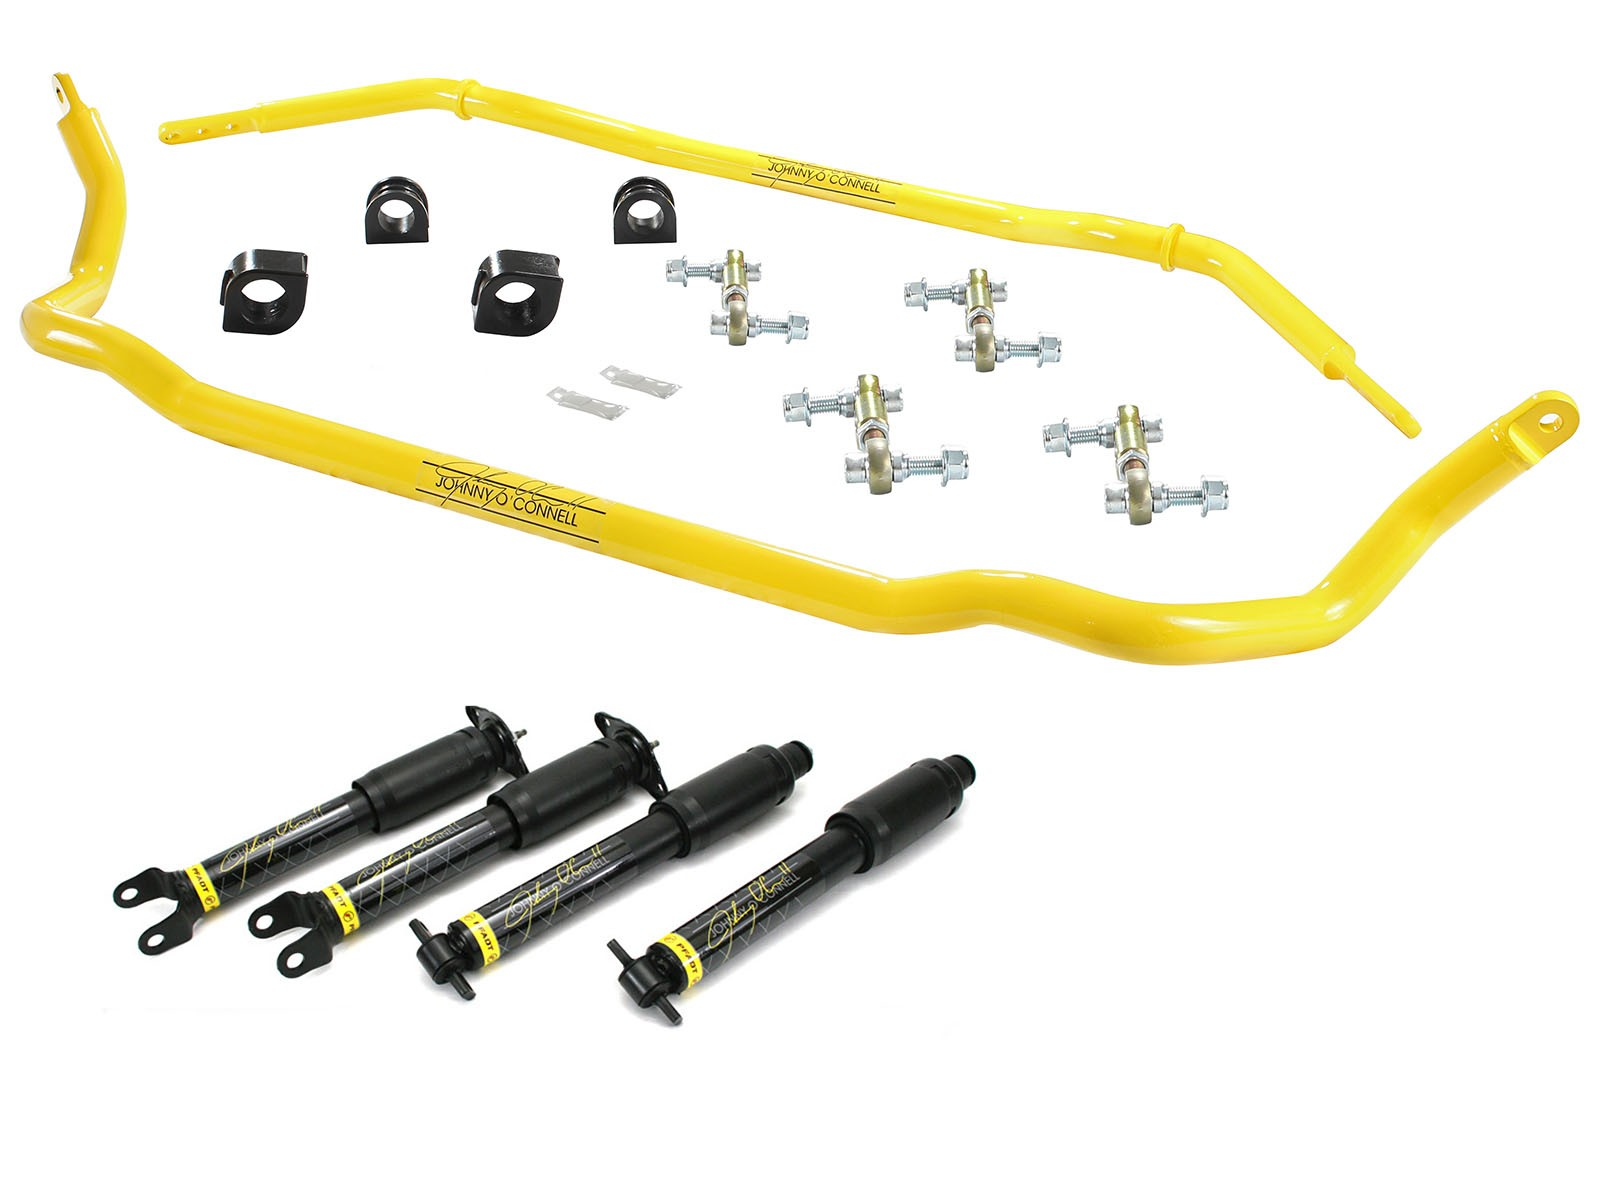 1997-2013 C5/C6 Corvette aFe Power aFe Control Johnny O'Connell Stage 1 Suspension Package